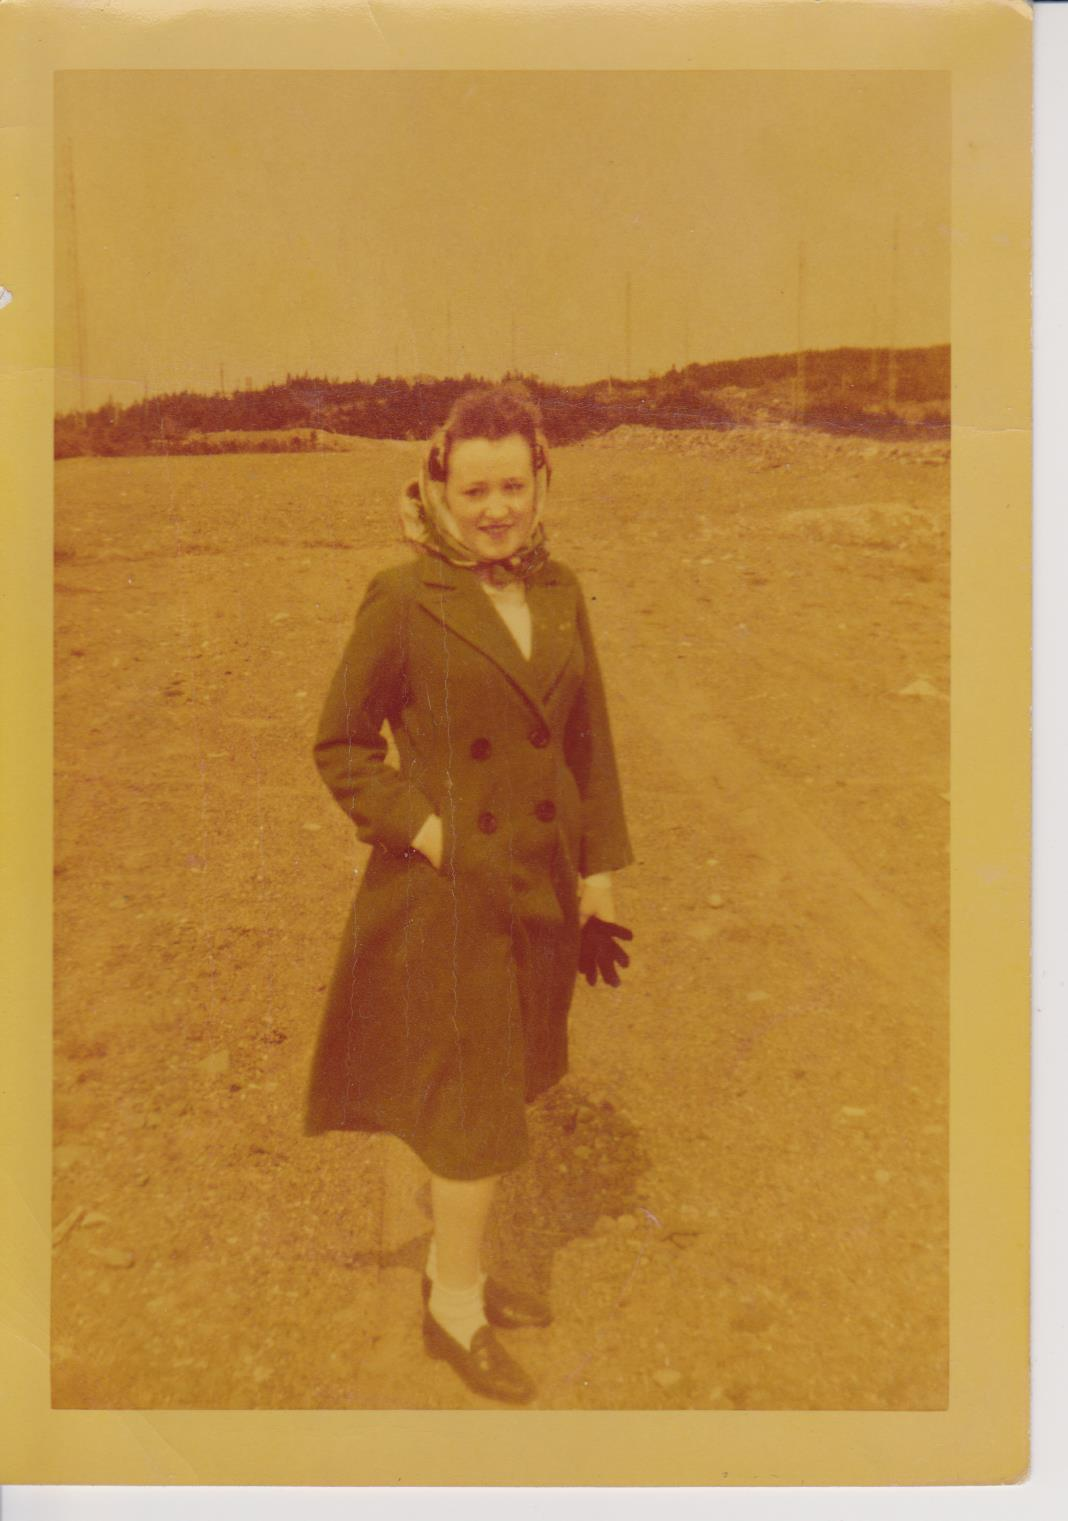 Kay McNeill-nee Power wearing her WW 2 Army-Navy outfit